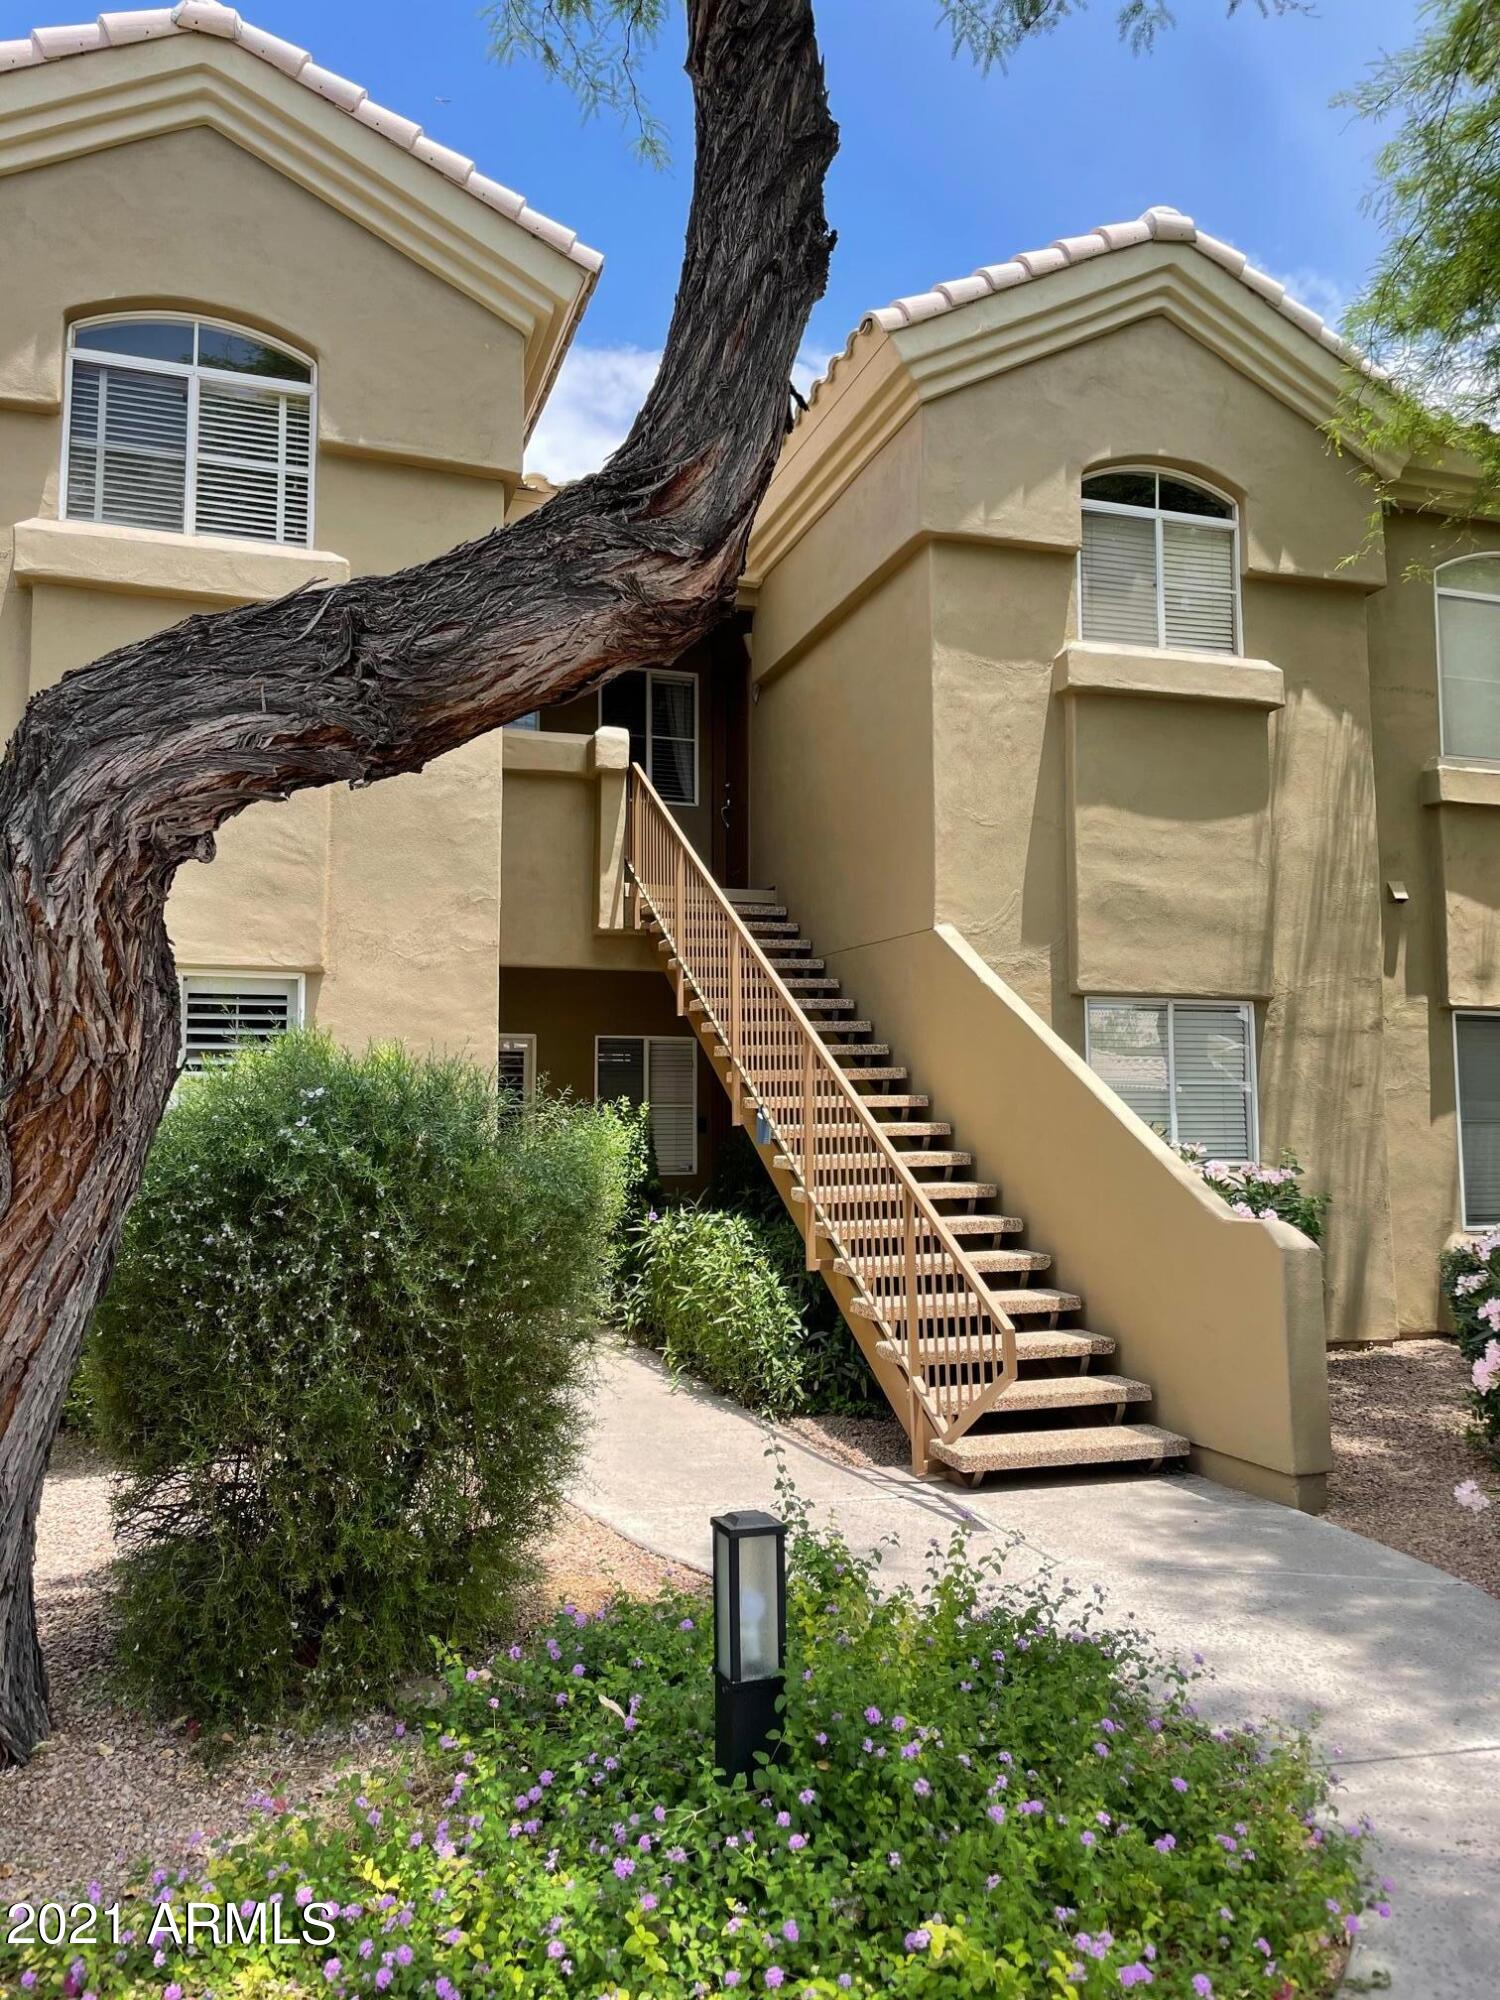 Come see this beautiful 2 bedroom, 2 bathroom condominium in the sought after community of Bella Terra.  The condo has a split floor plan, granite countertops, and has been recently painted.  Excellent community features with a heated pool, spa, clubhouse and exercise facilty.  This unit is ready for you!